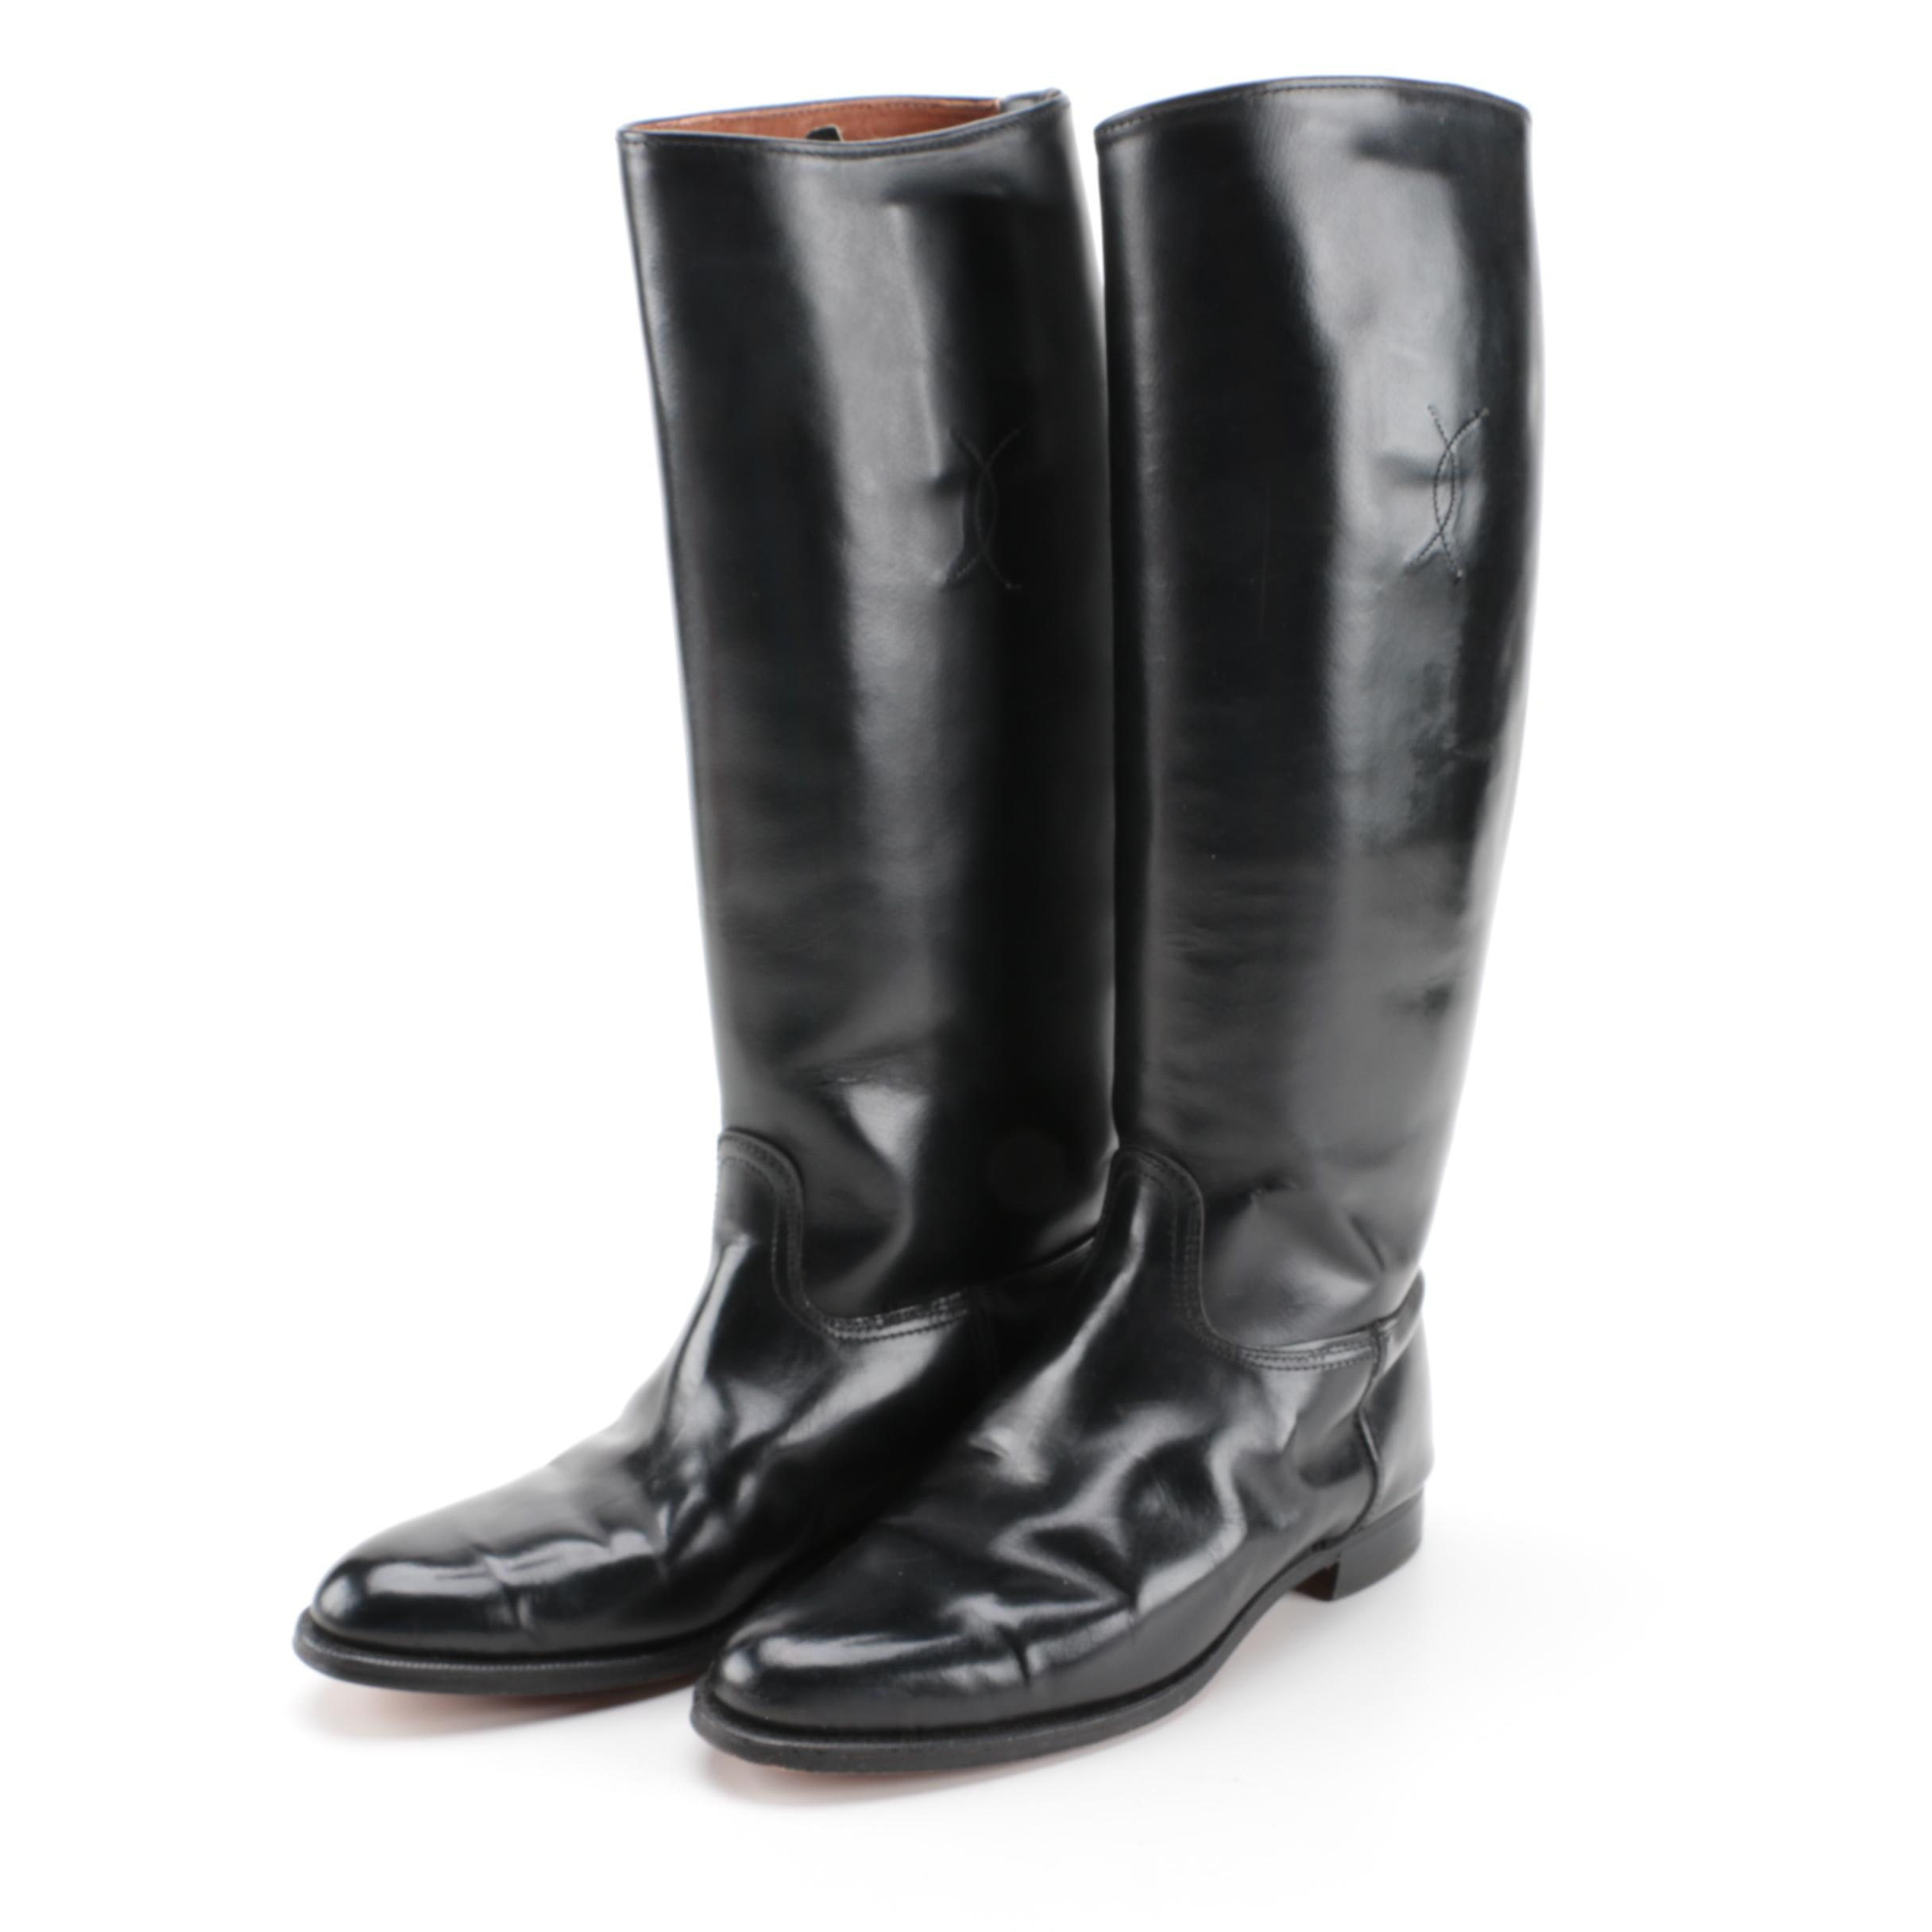 Women's Black Leather Riding Boots